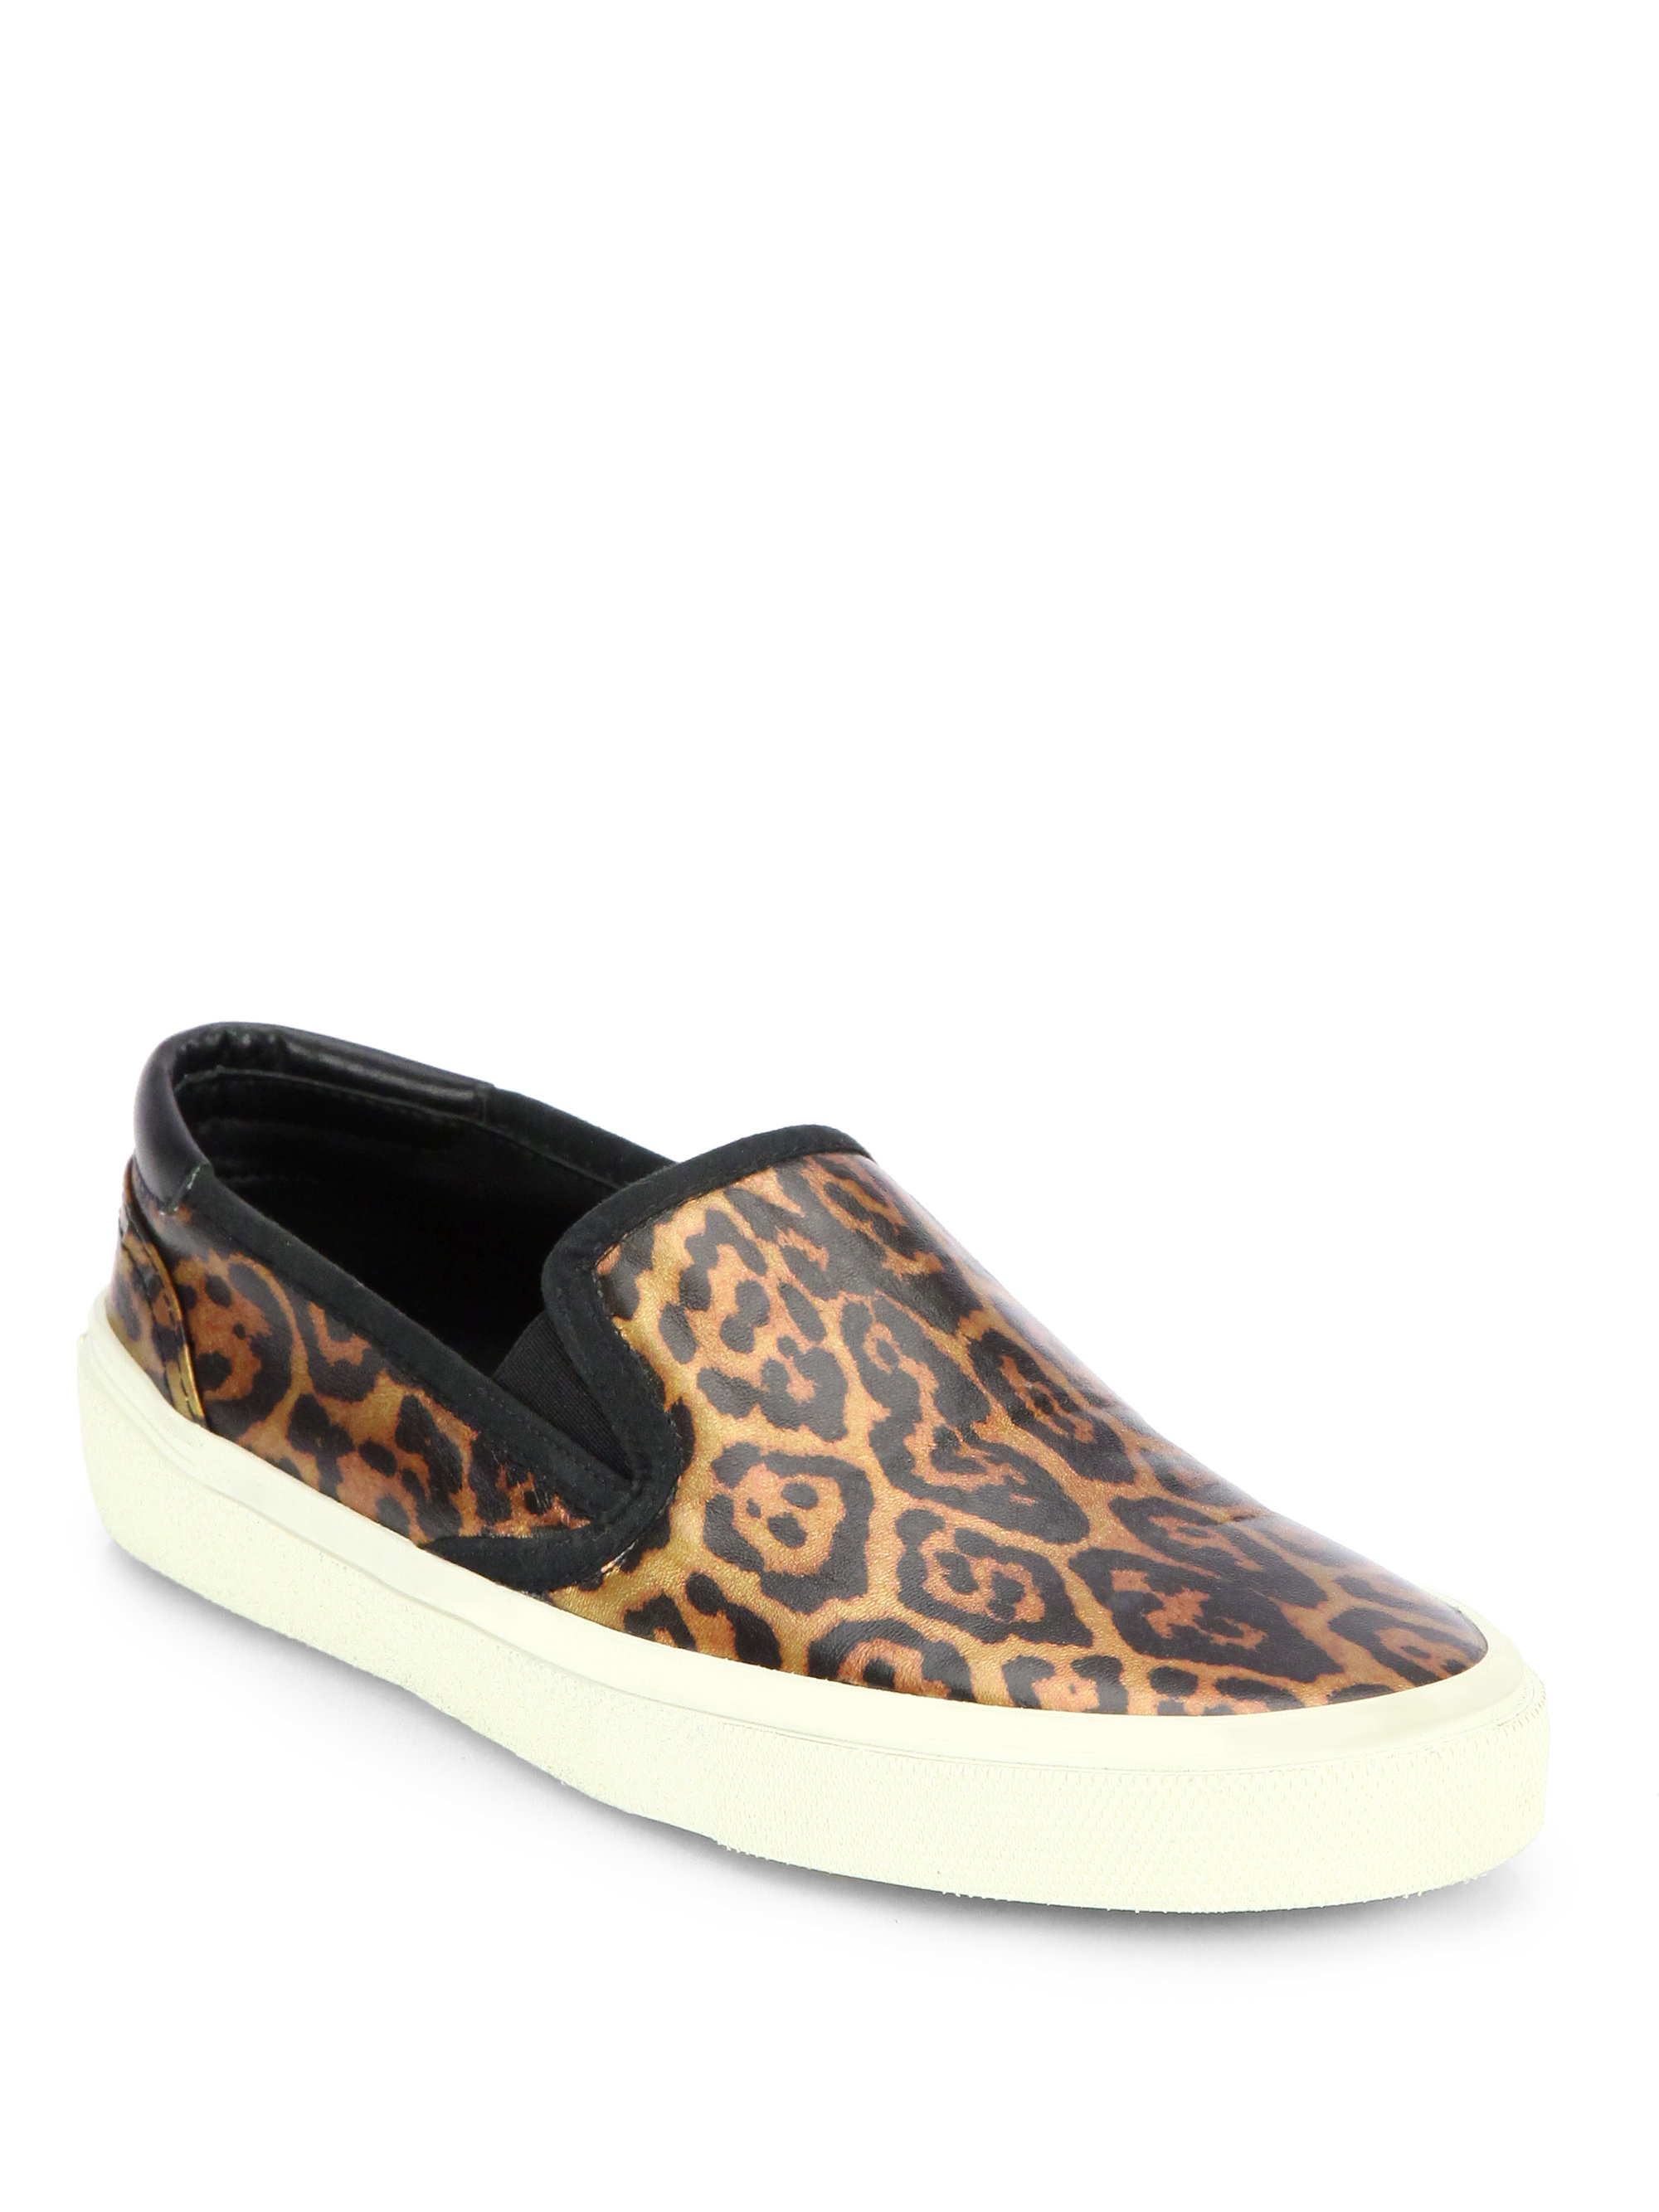 saint laurent leopardprint leather laceless sneakers in animal leopard lyst. Black Bedroom Furniture Sets. Home Design Ideas